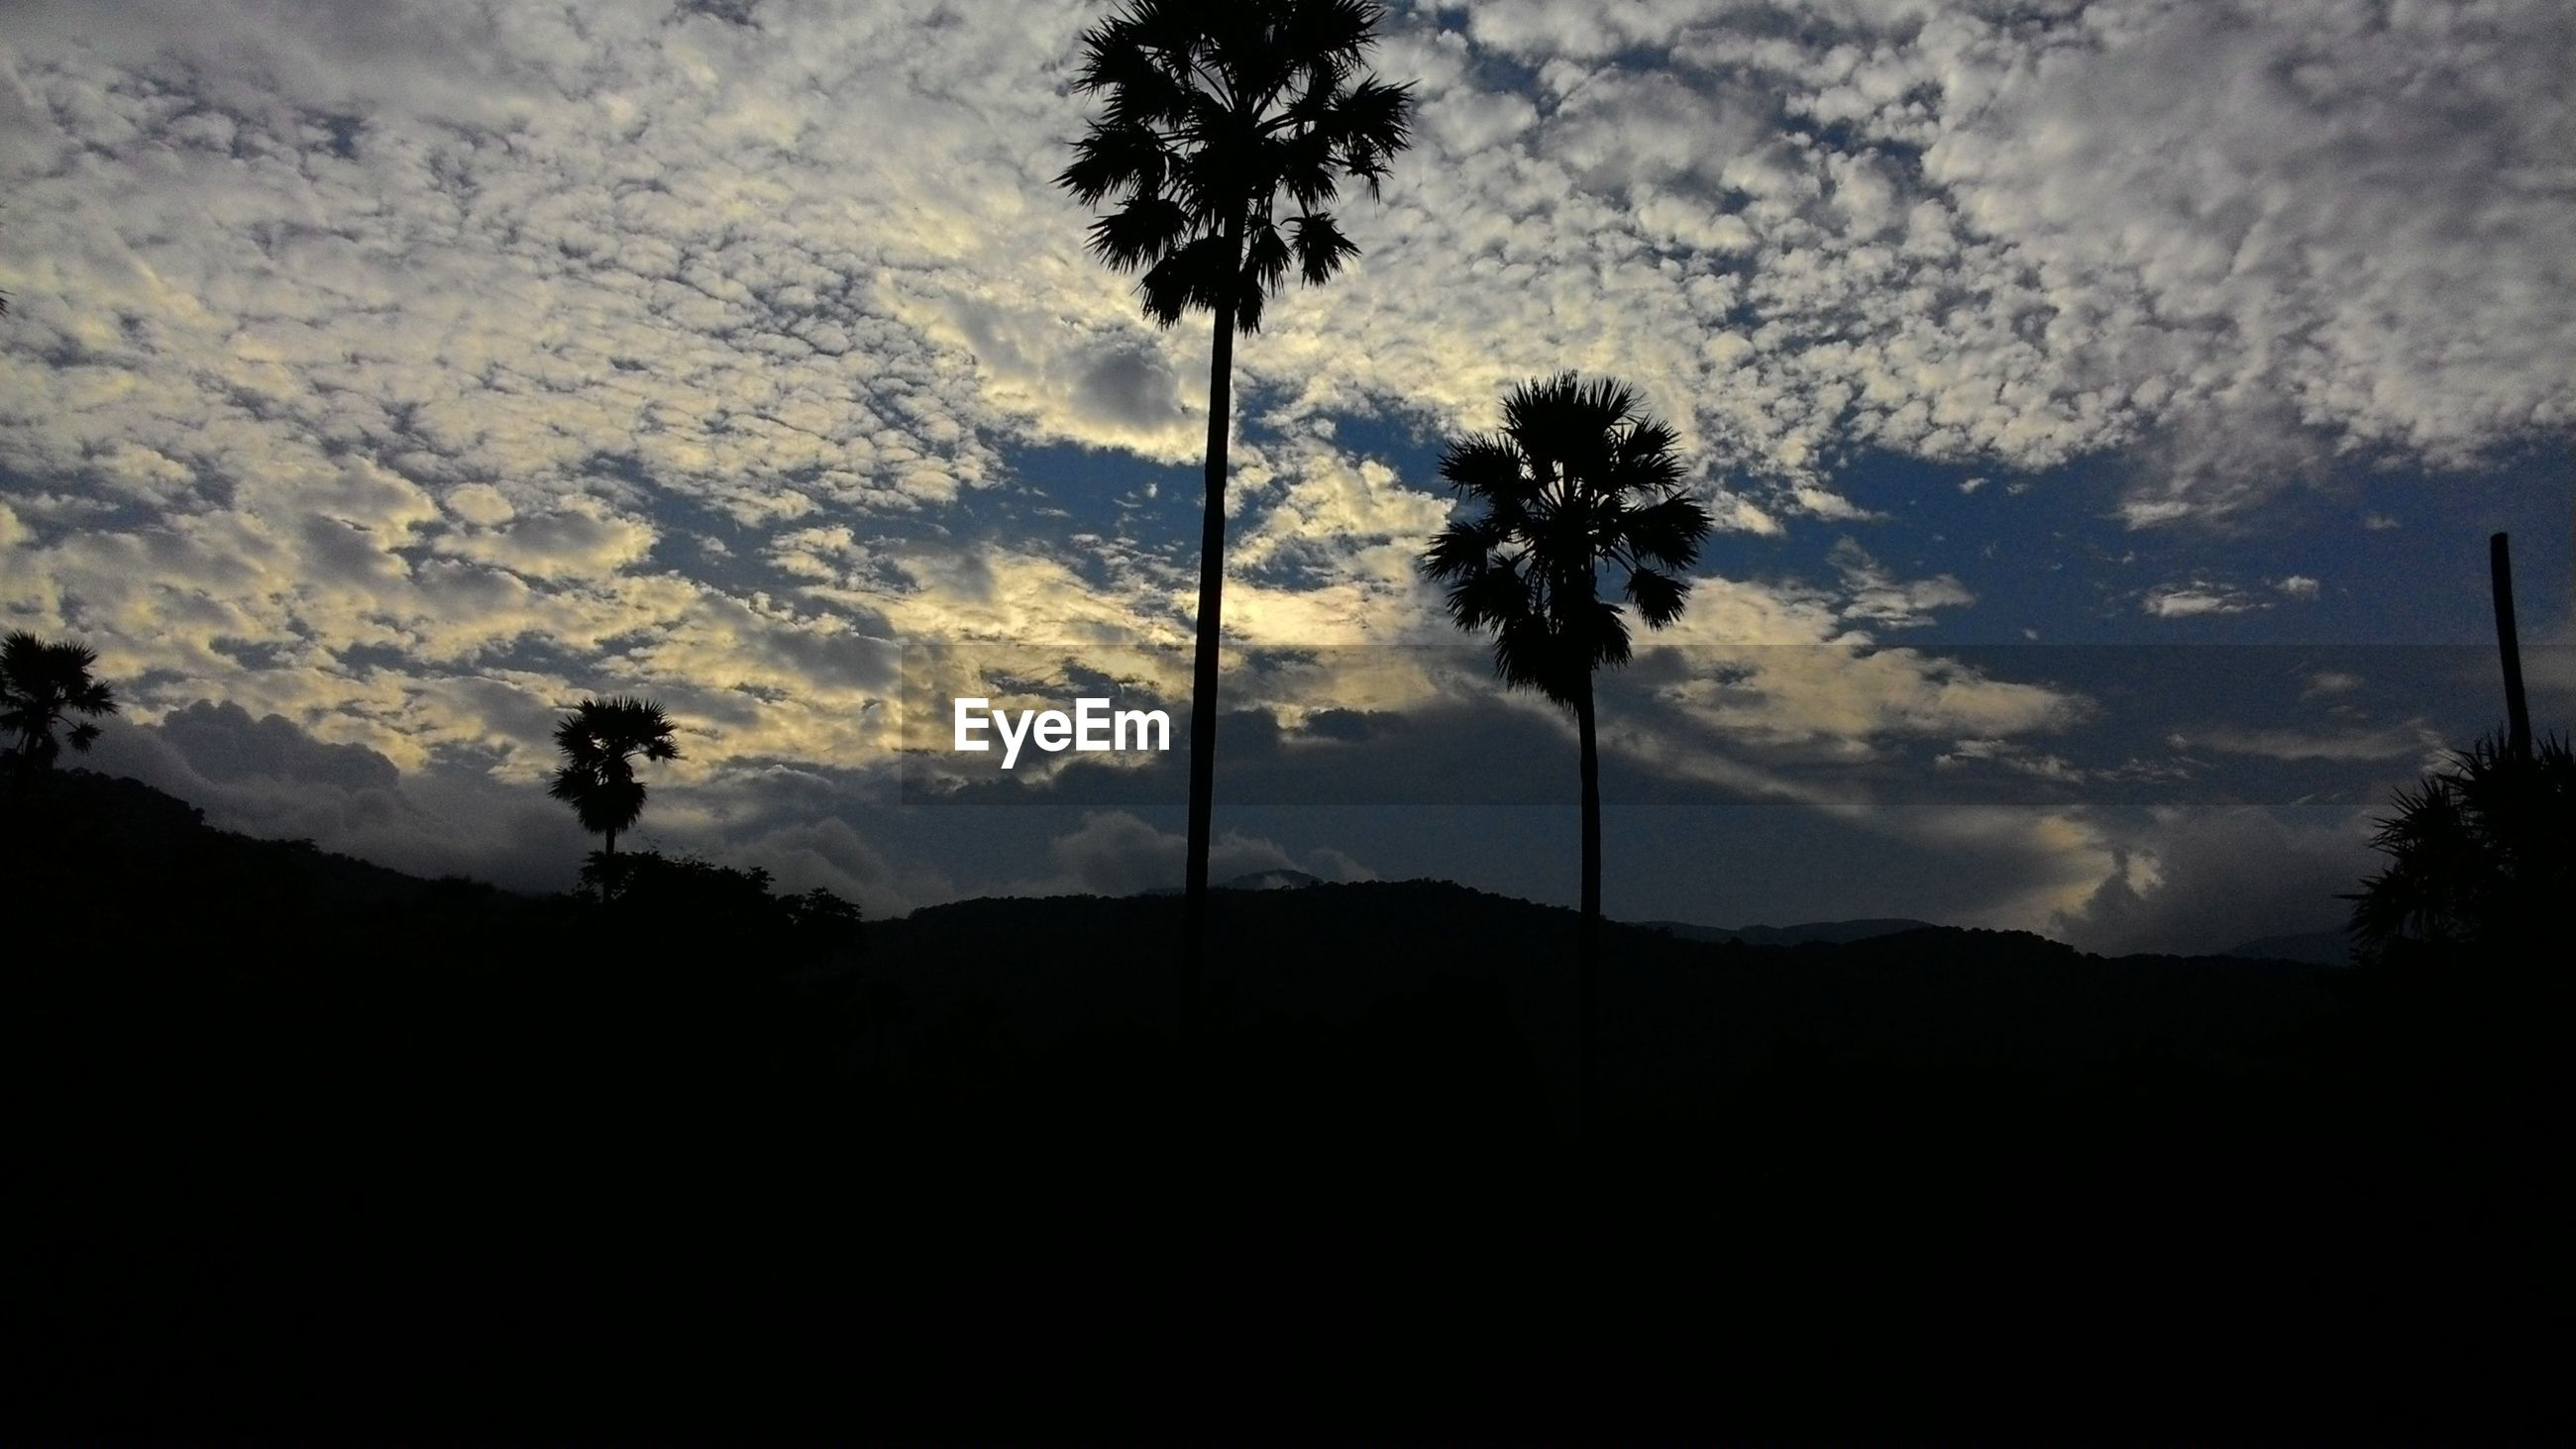 Palm trees against cloudy sky at dusk